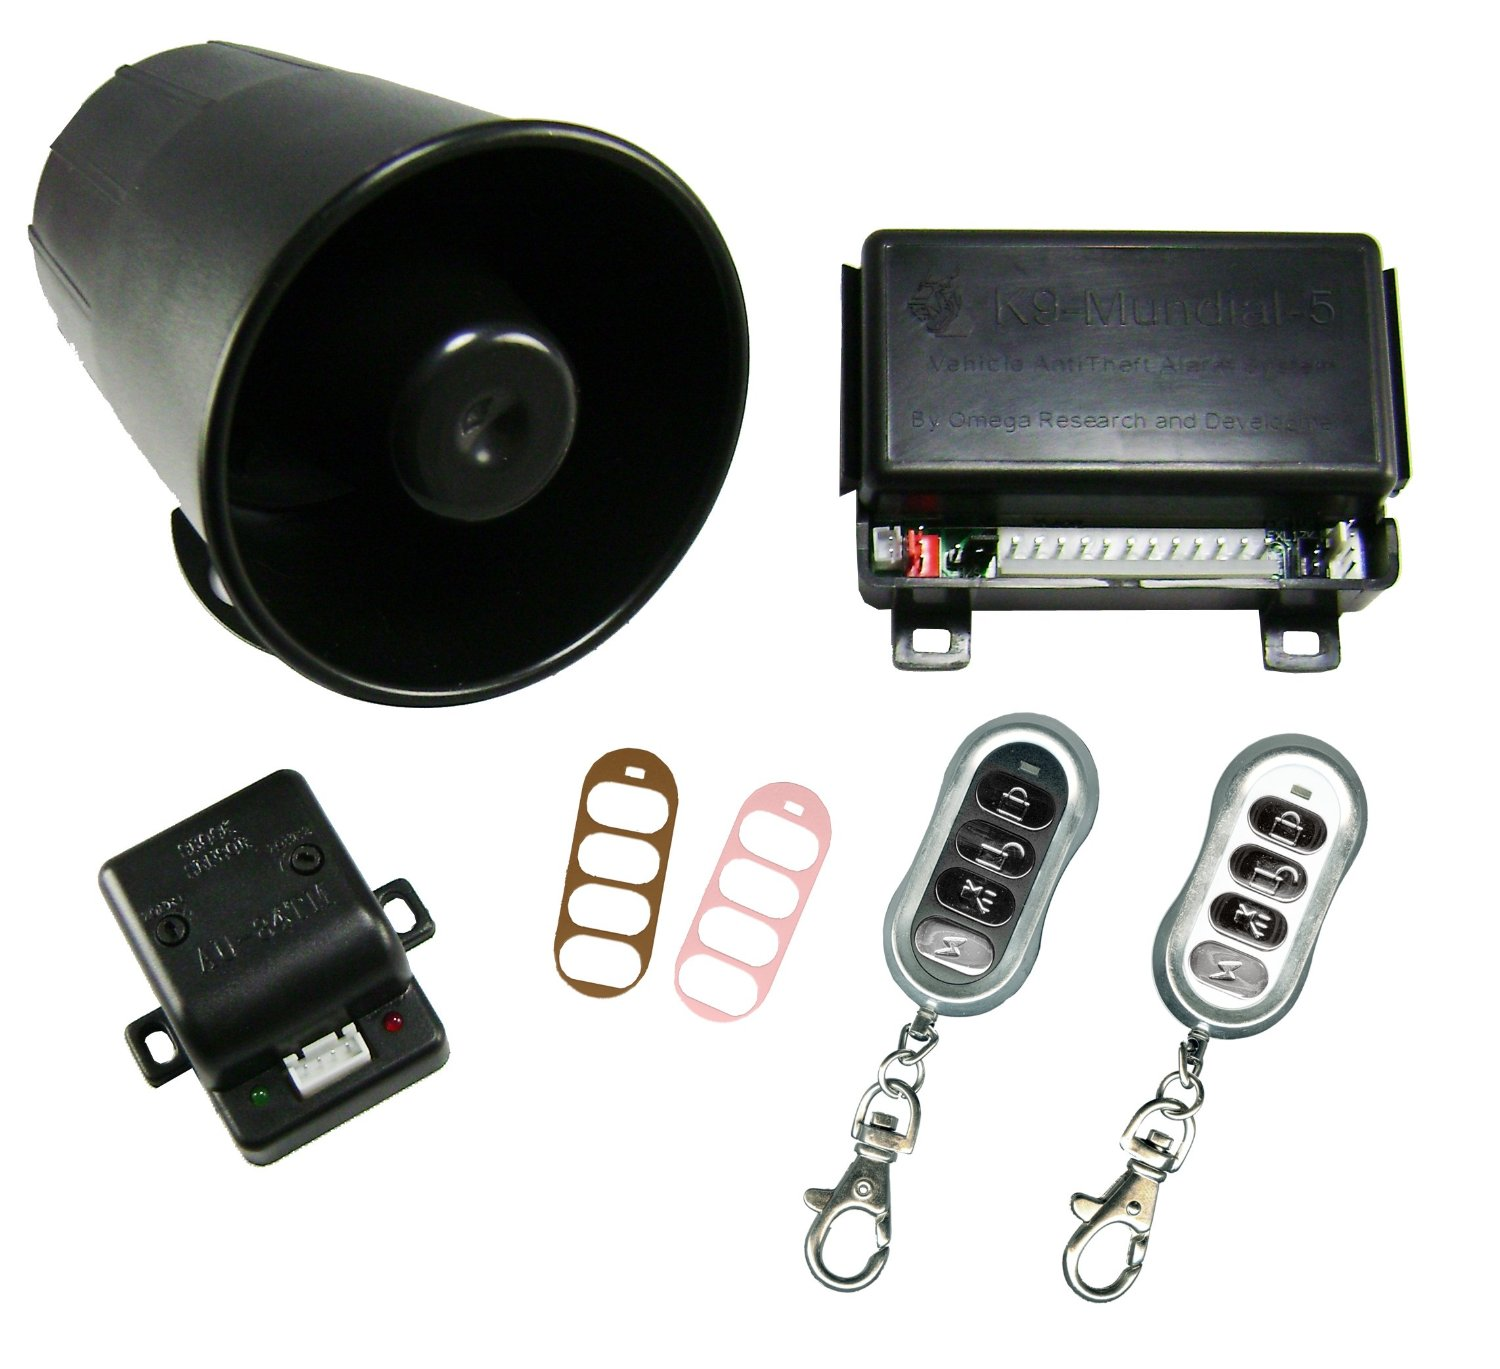 K9 Vehicle Keyless Entry Systems